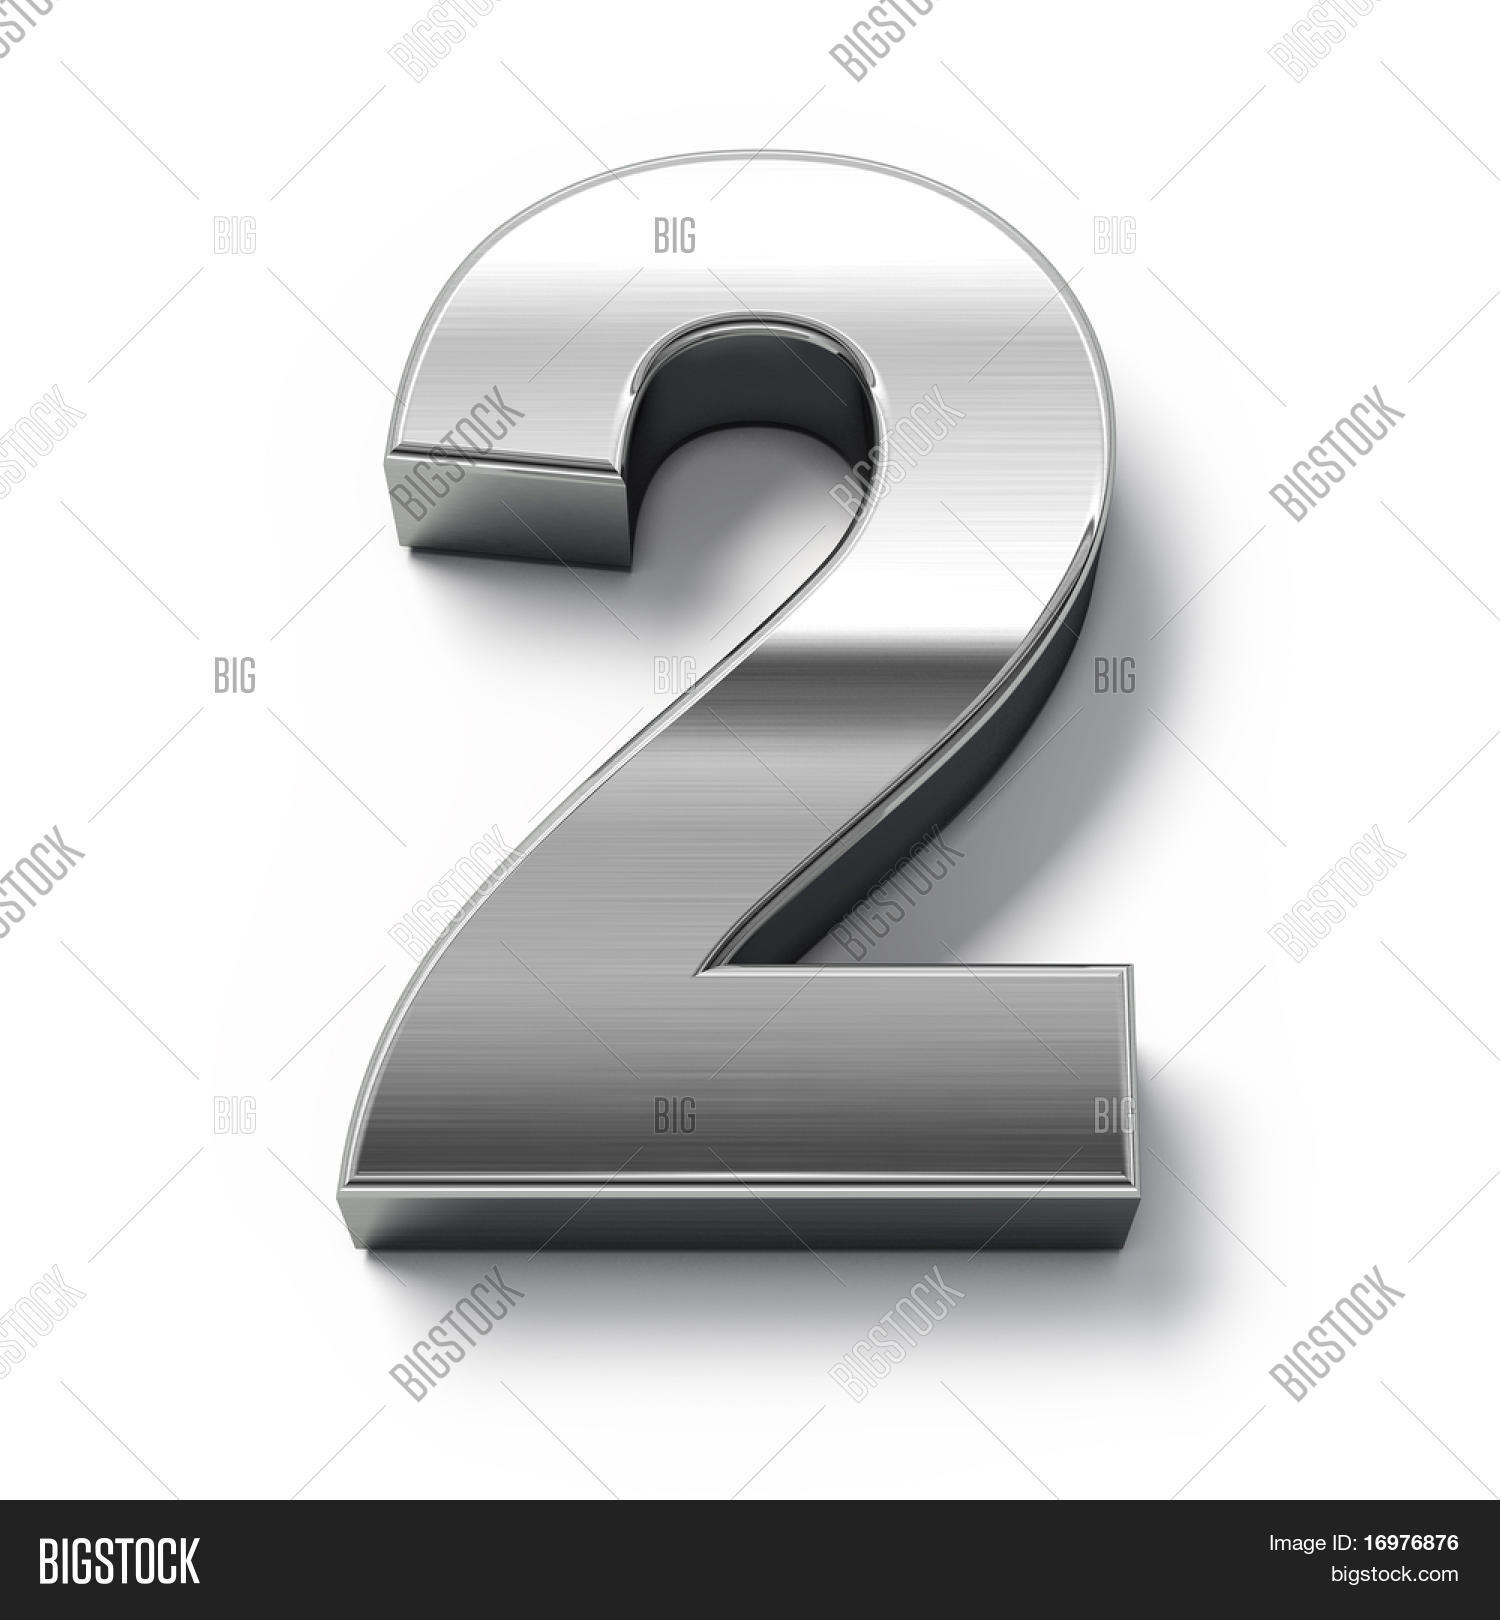 3d metal numbers number 0 image photo bigstock for Large 3d numbers